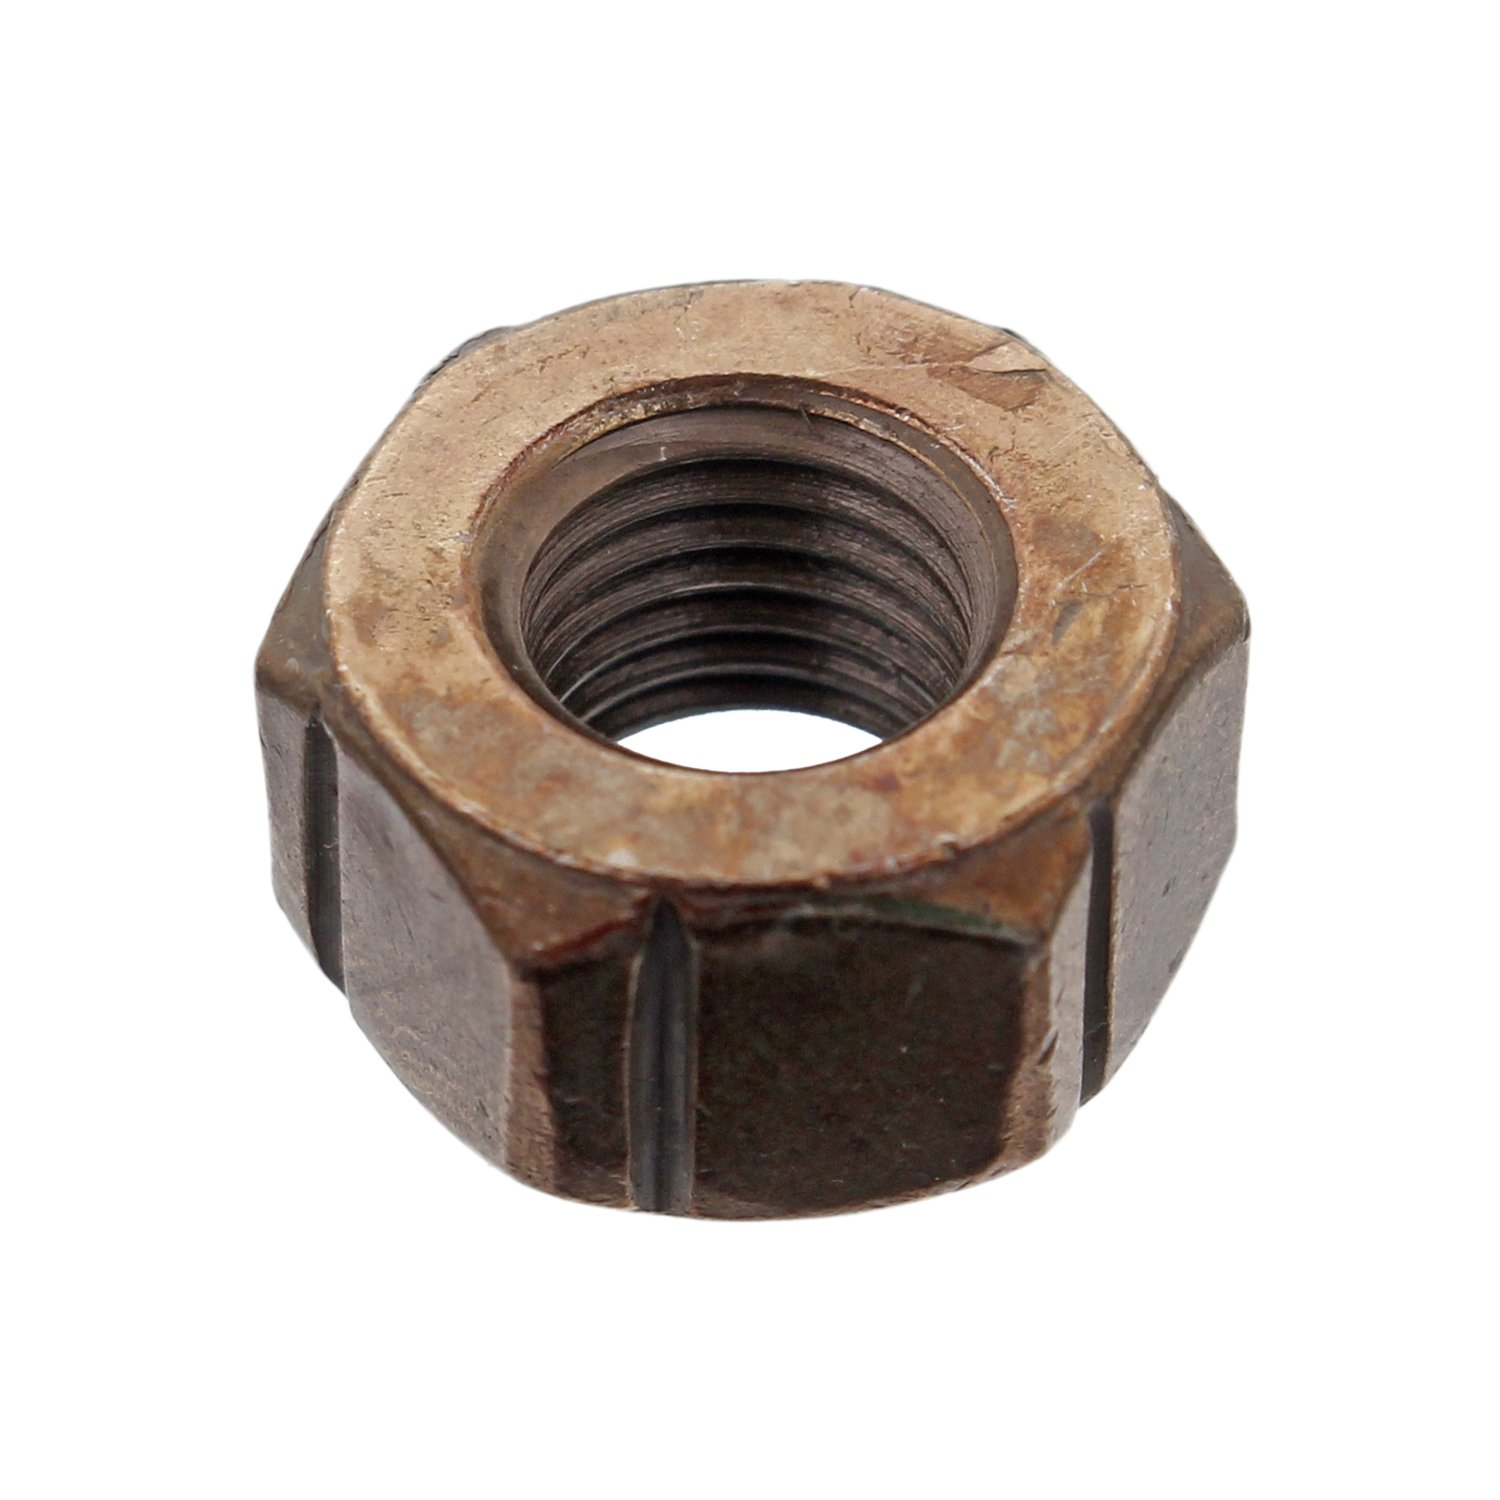 Febi 2127 Connecting Rod Nut 02127